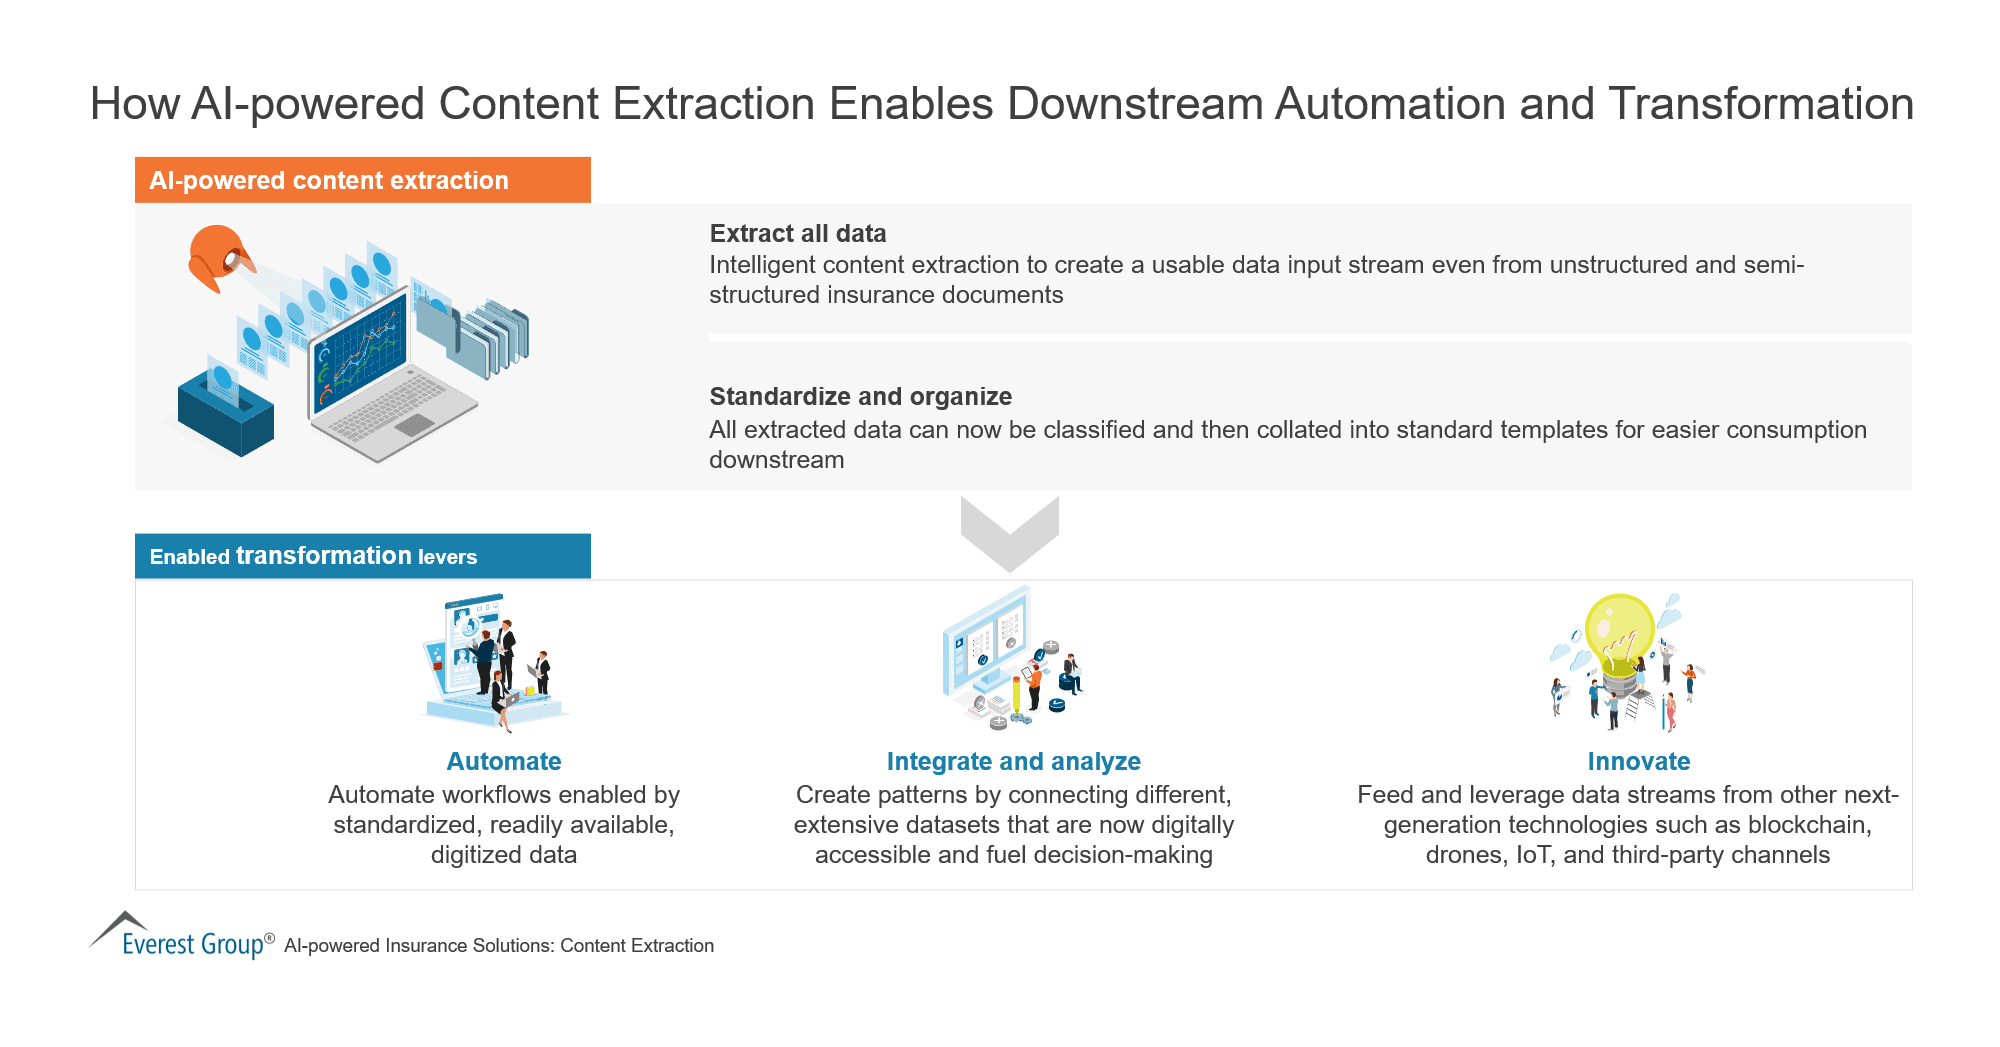 How AI-powered Content Extraction Enables Downstream Automation and Transformation